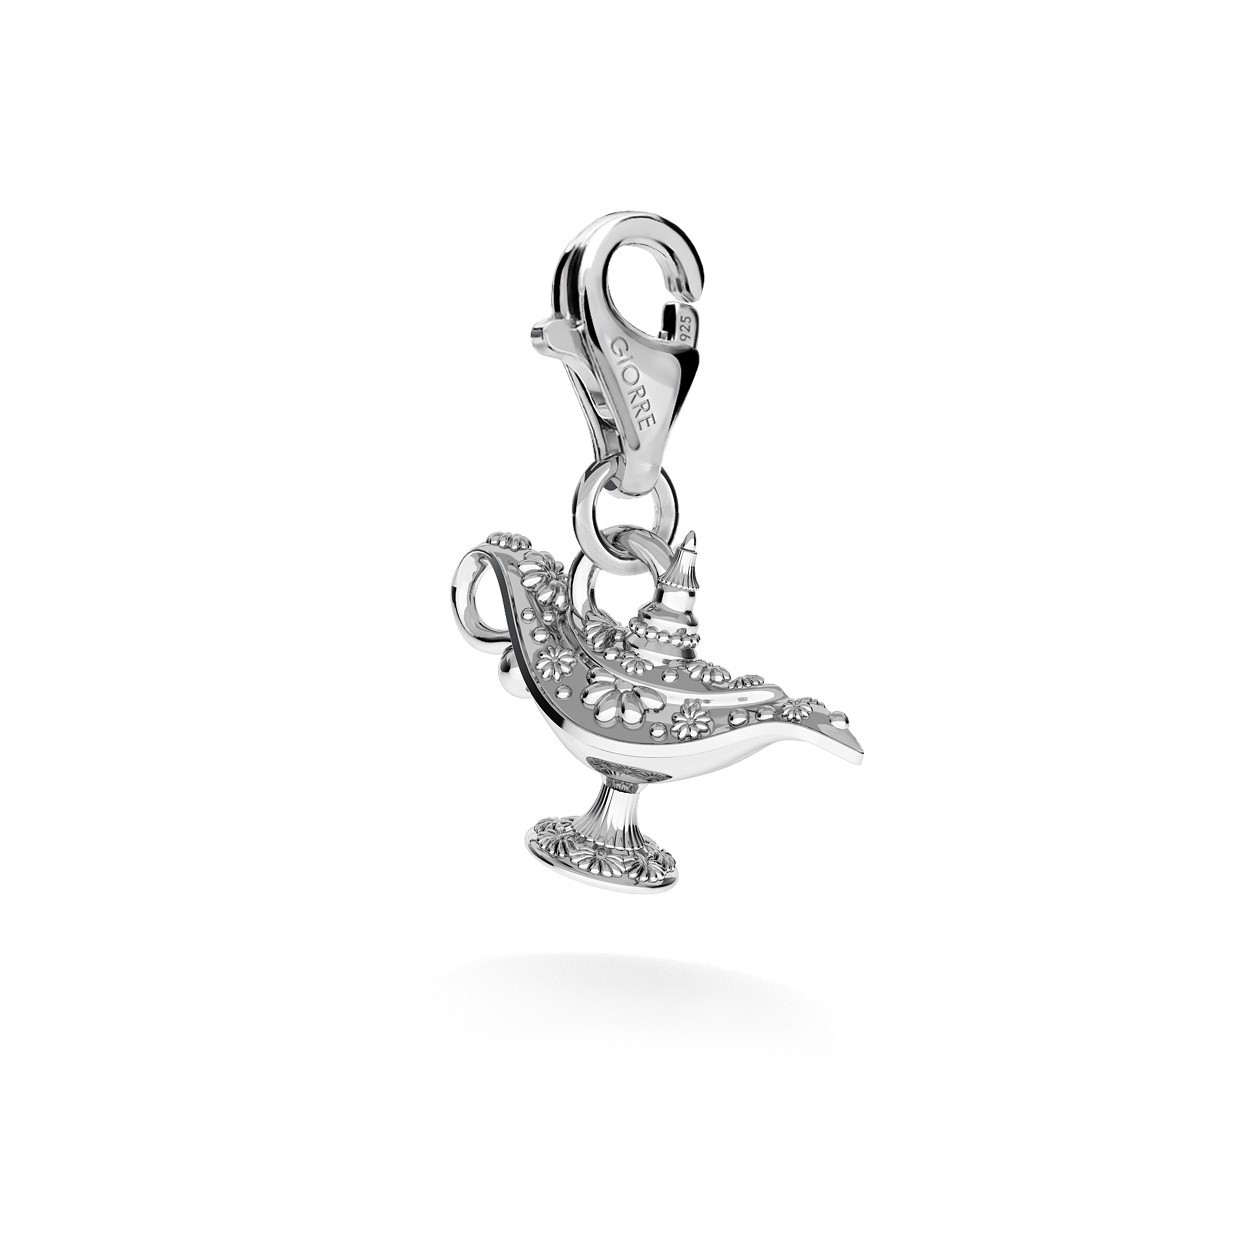 CHARM 137, ALLADIN'S LAMP, STERLING SILVER (925) RHODIUM OR GOLD PLATED